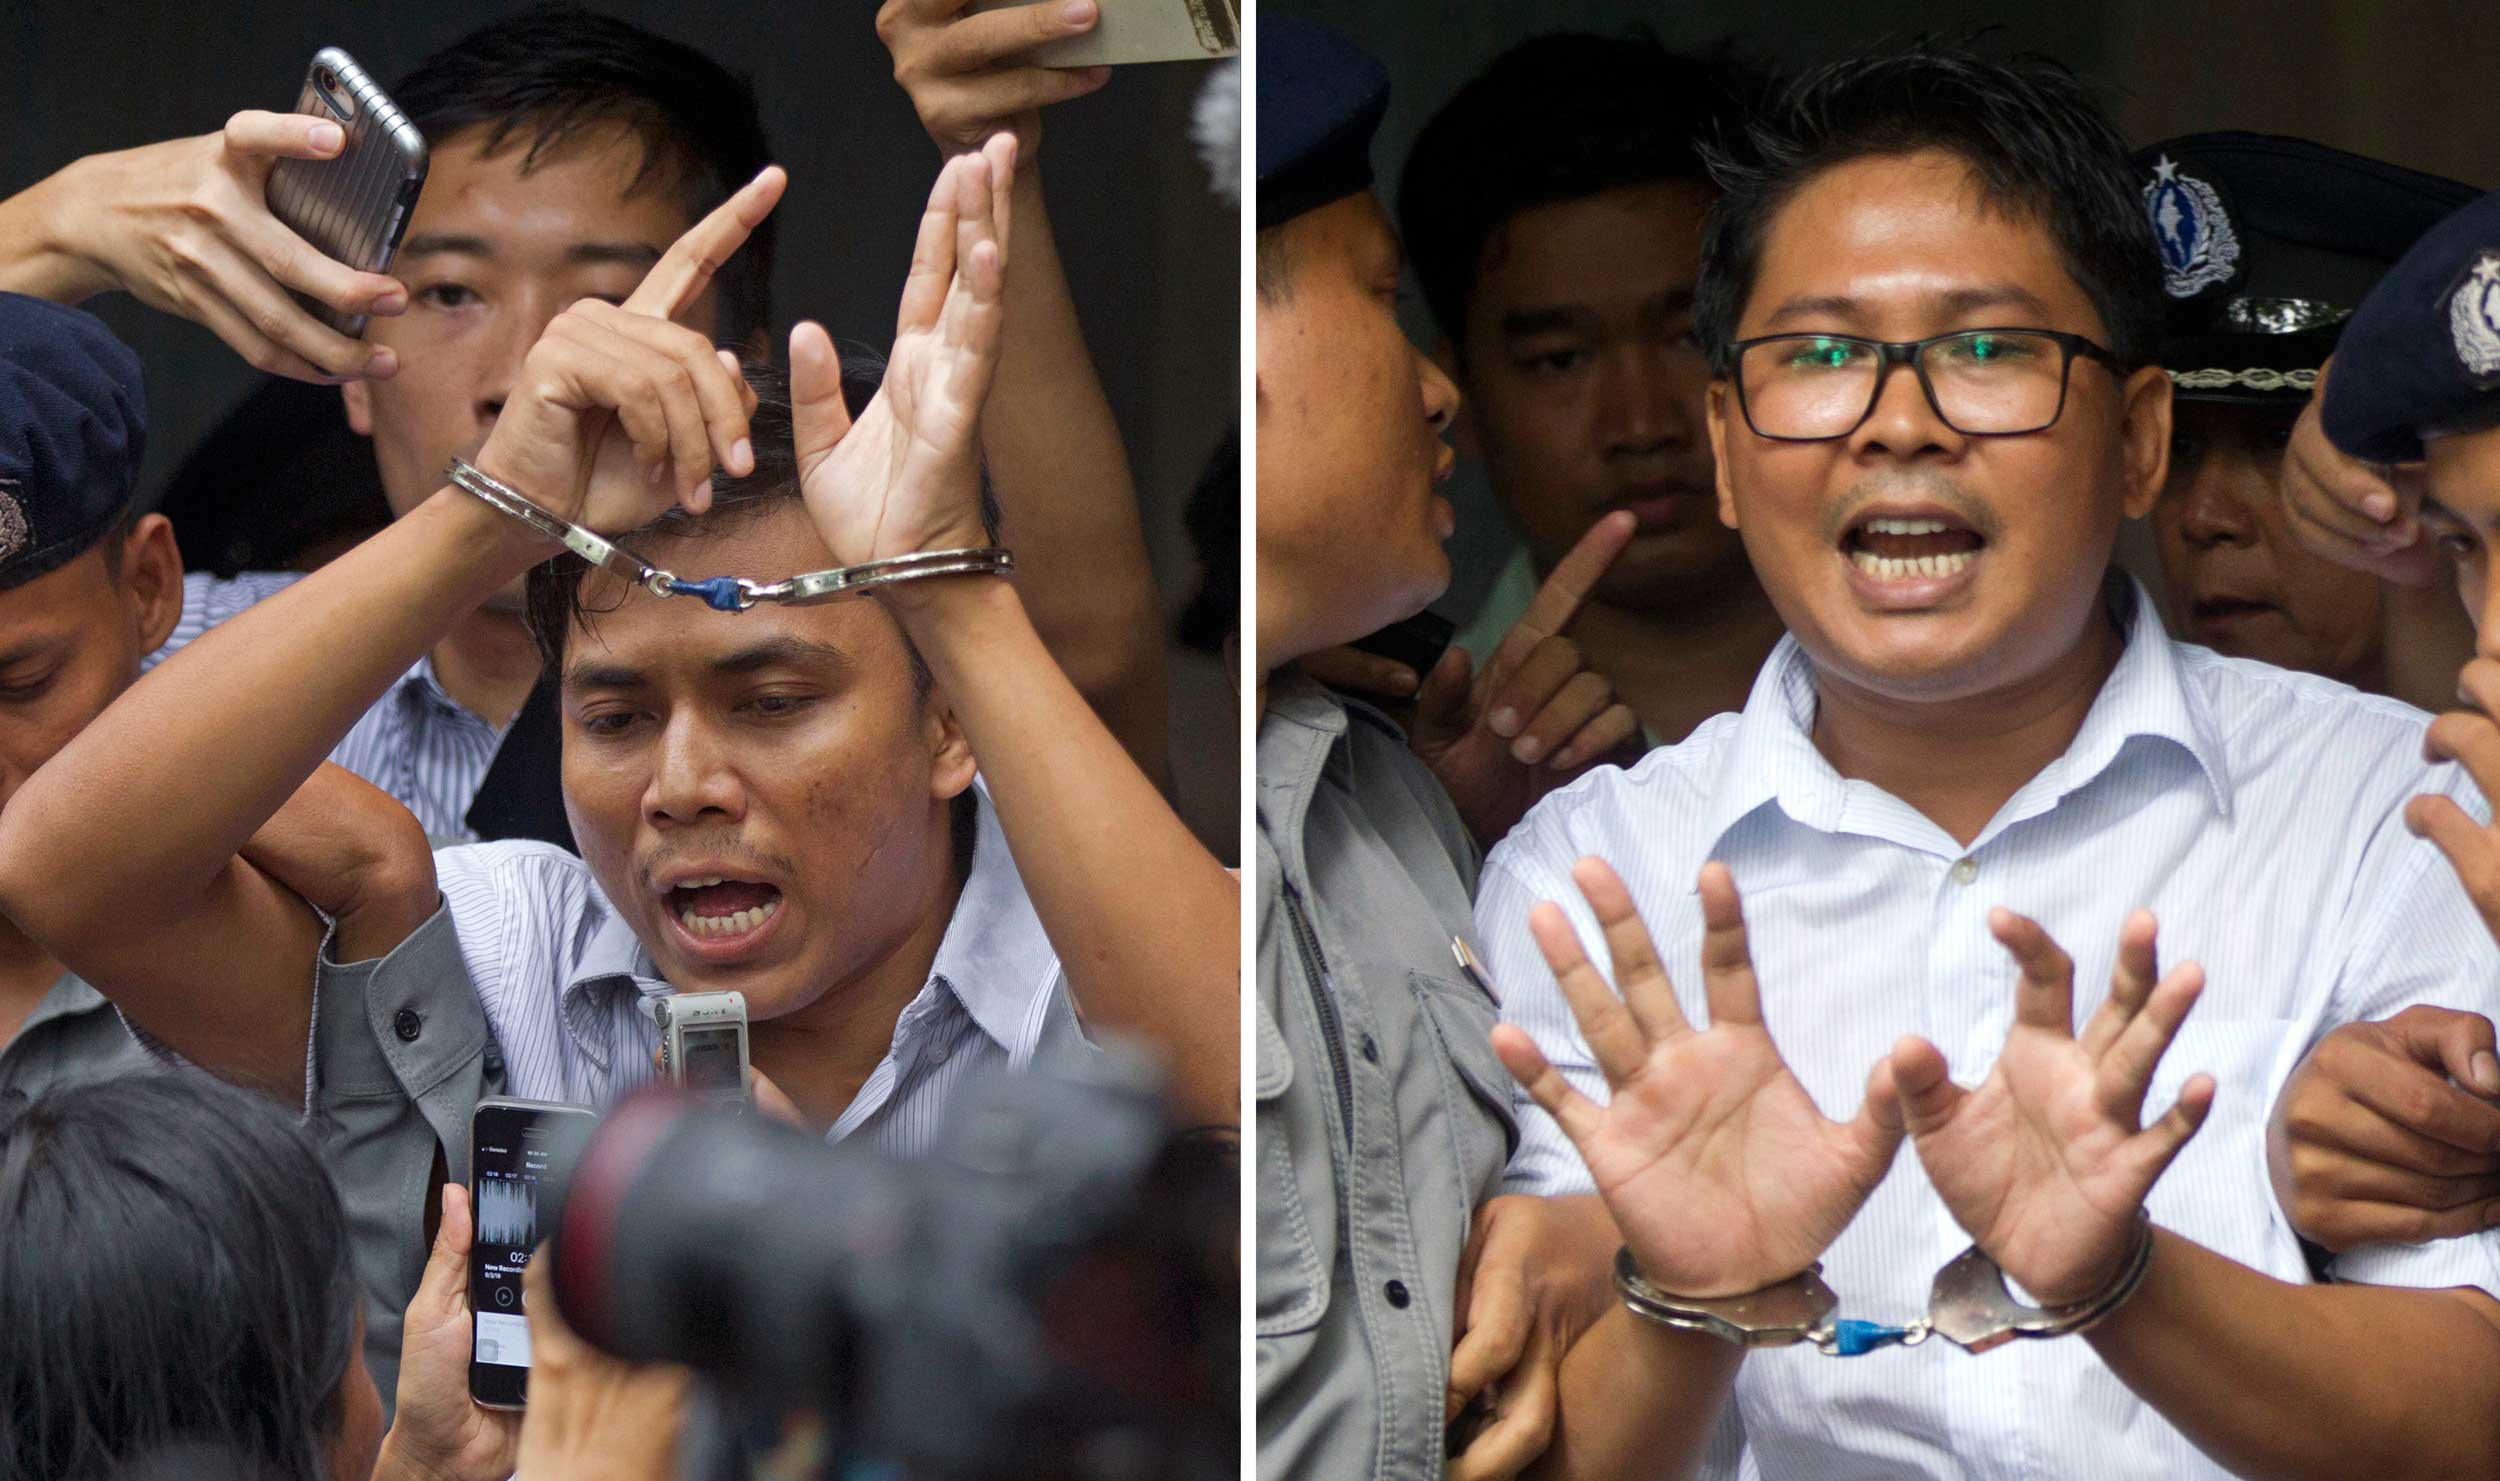 Reuters journalists Kyaw Soe Oo (left) and Wa Lone, are handcuffed as they are escorted out of a court in Yangon, Myanmar, on Septemper 3, 2018